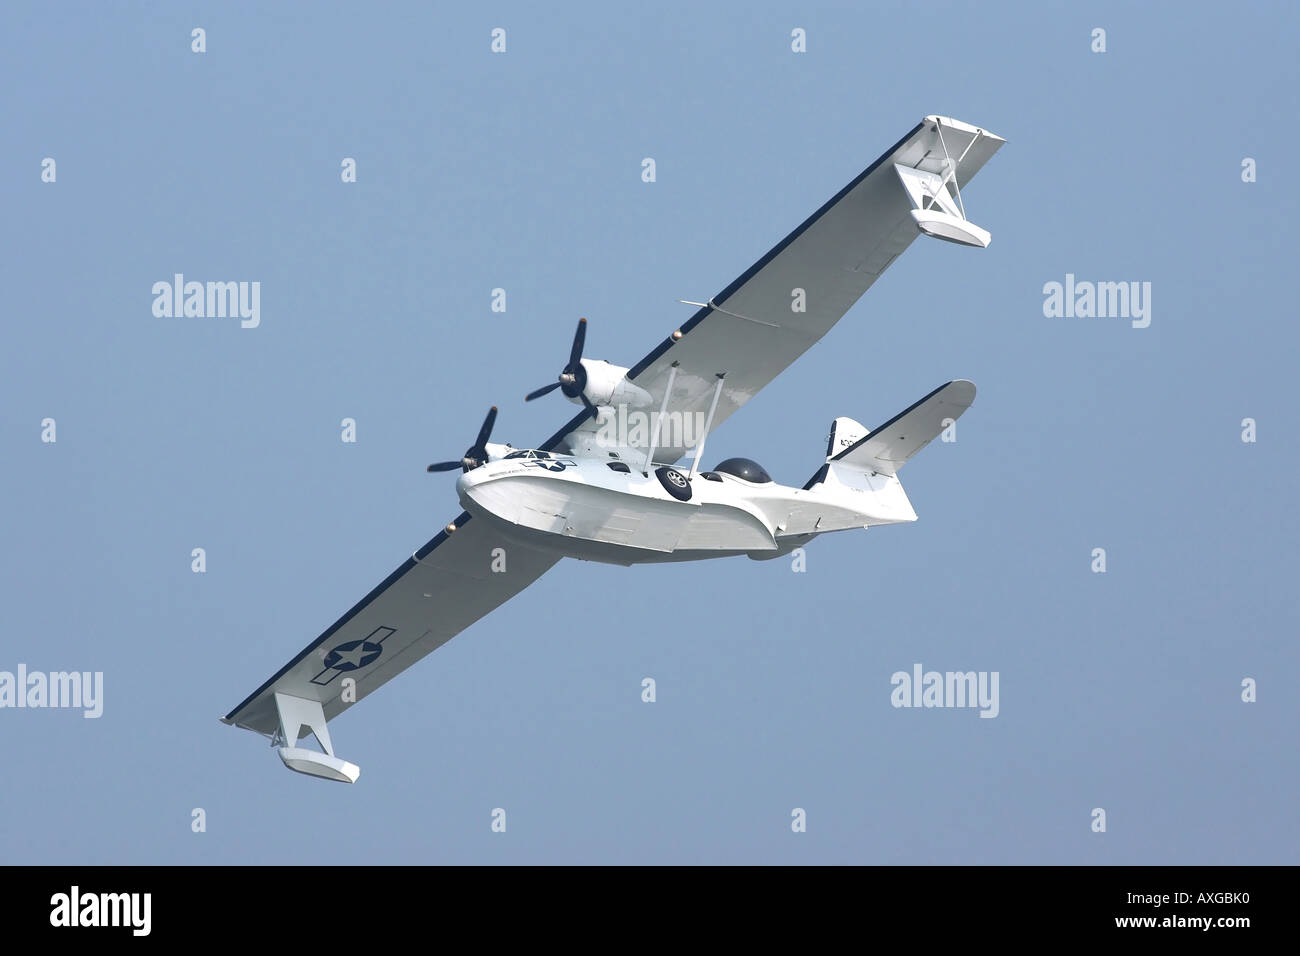 US Navy Consolidated PBY Catalina amphibious aircraft - Stock Image